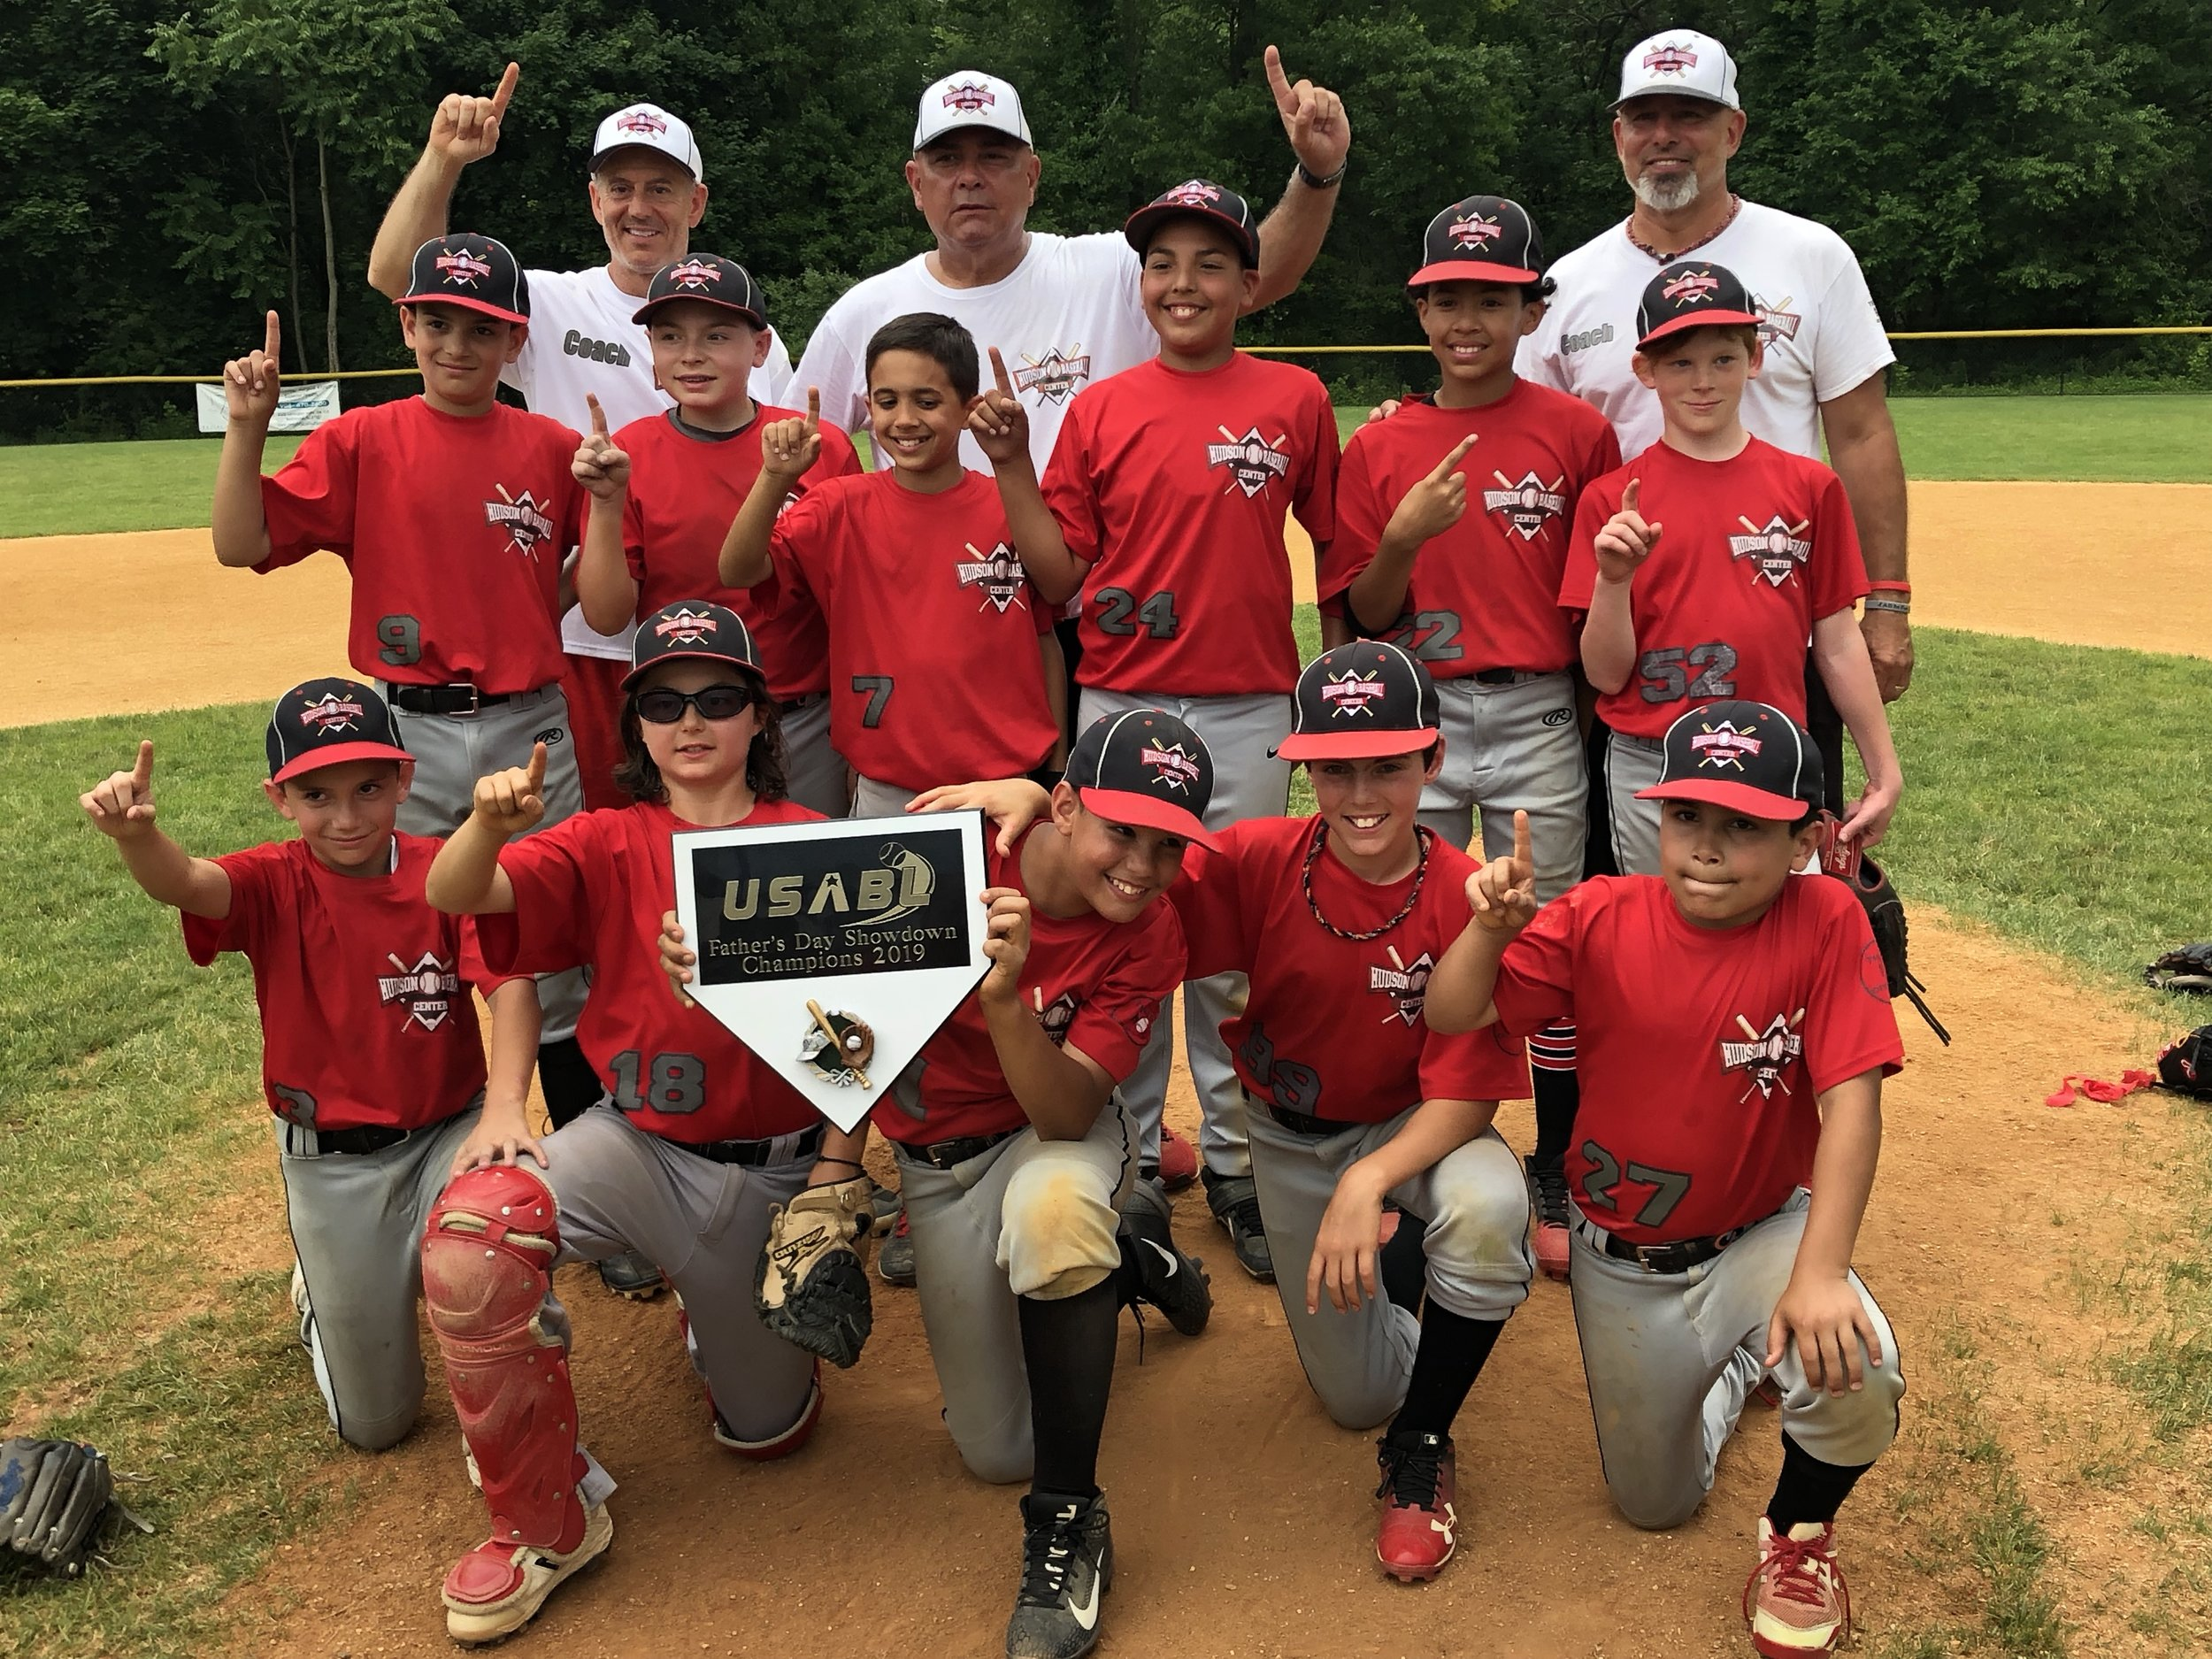 2019 USABL-Fathers Day Showdown Champs-11U